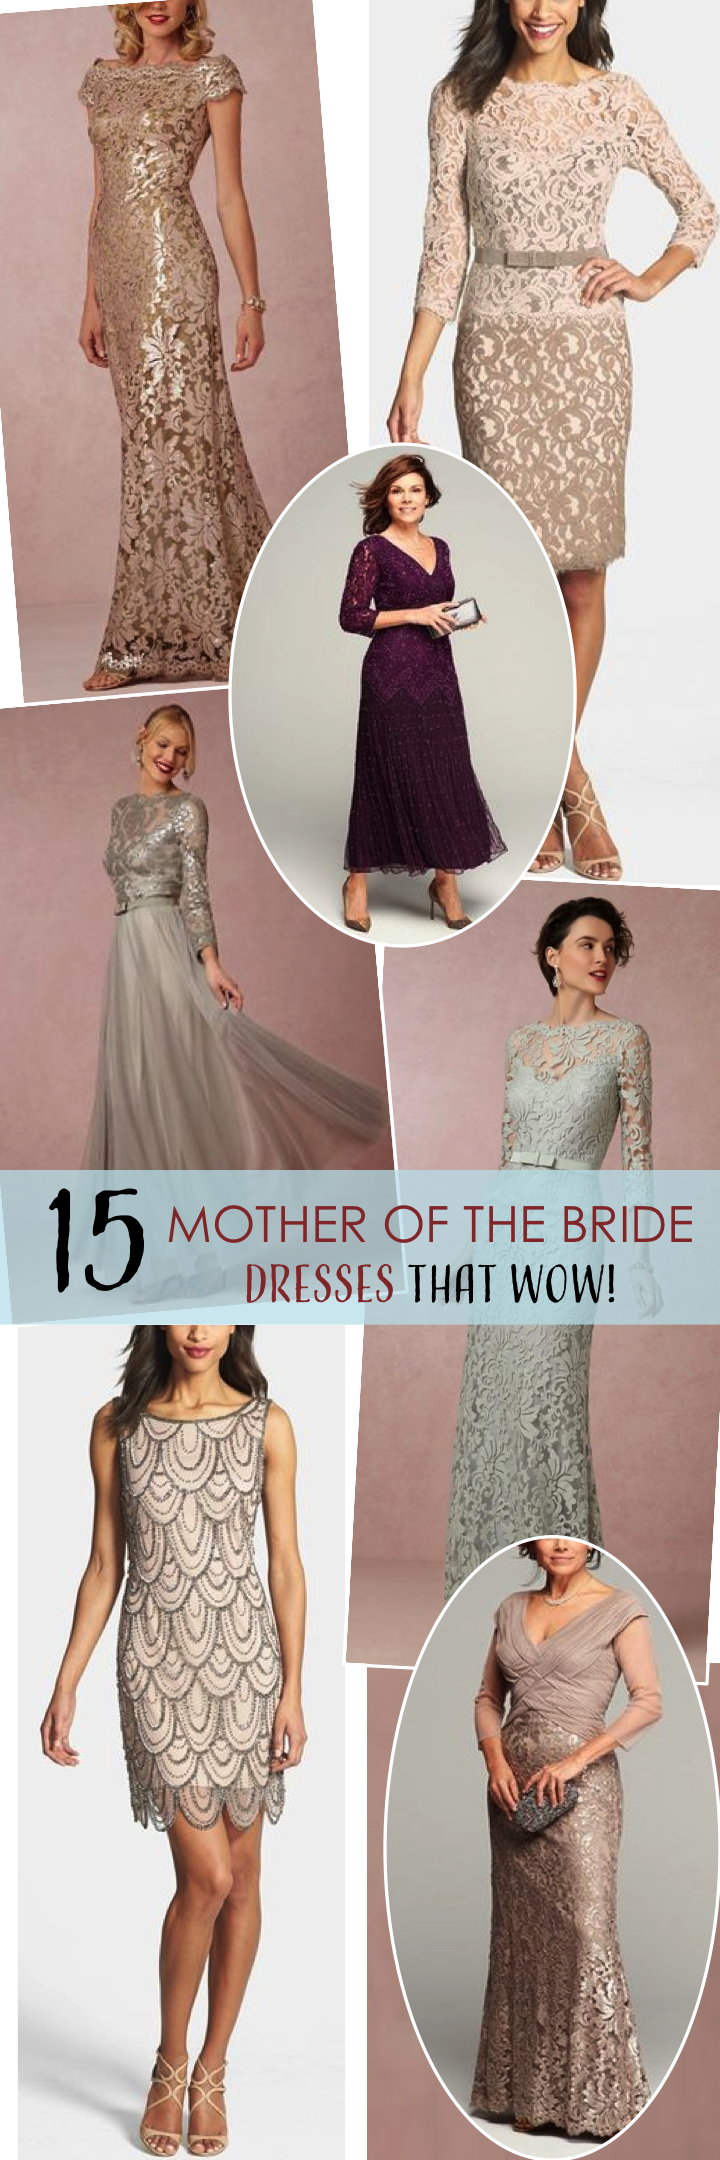 Top 15 mother of the bride dresses